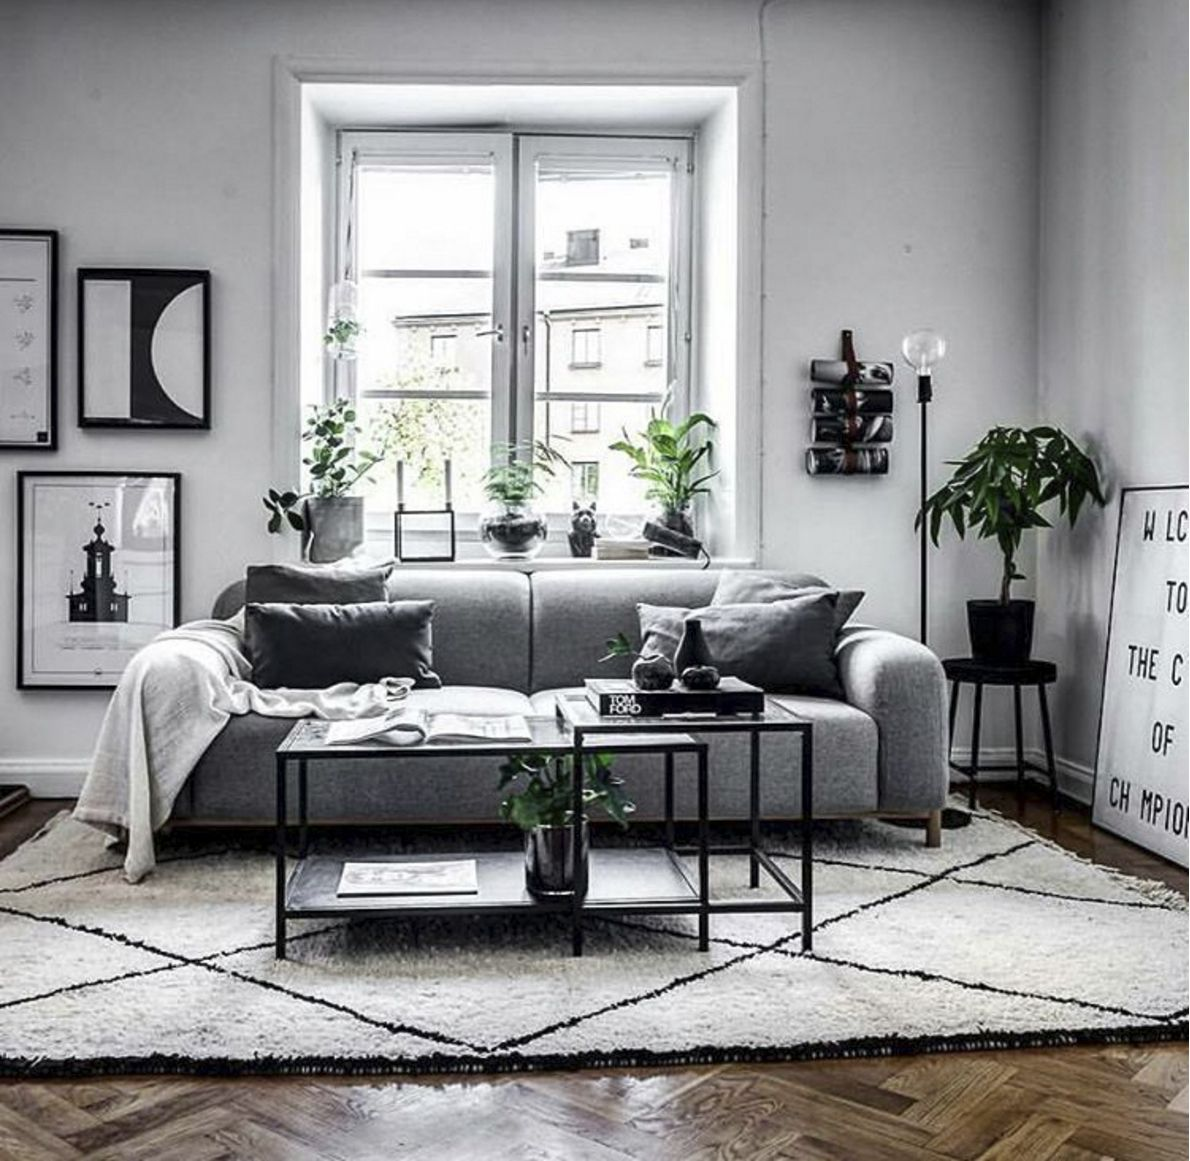 M A R V I N Sofakompagniet Sofa Marvin Boligindretning Danskdesign Danishdesi Monochrome Living Room Black Living Room Decor Black And White Living Room